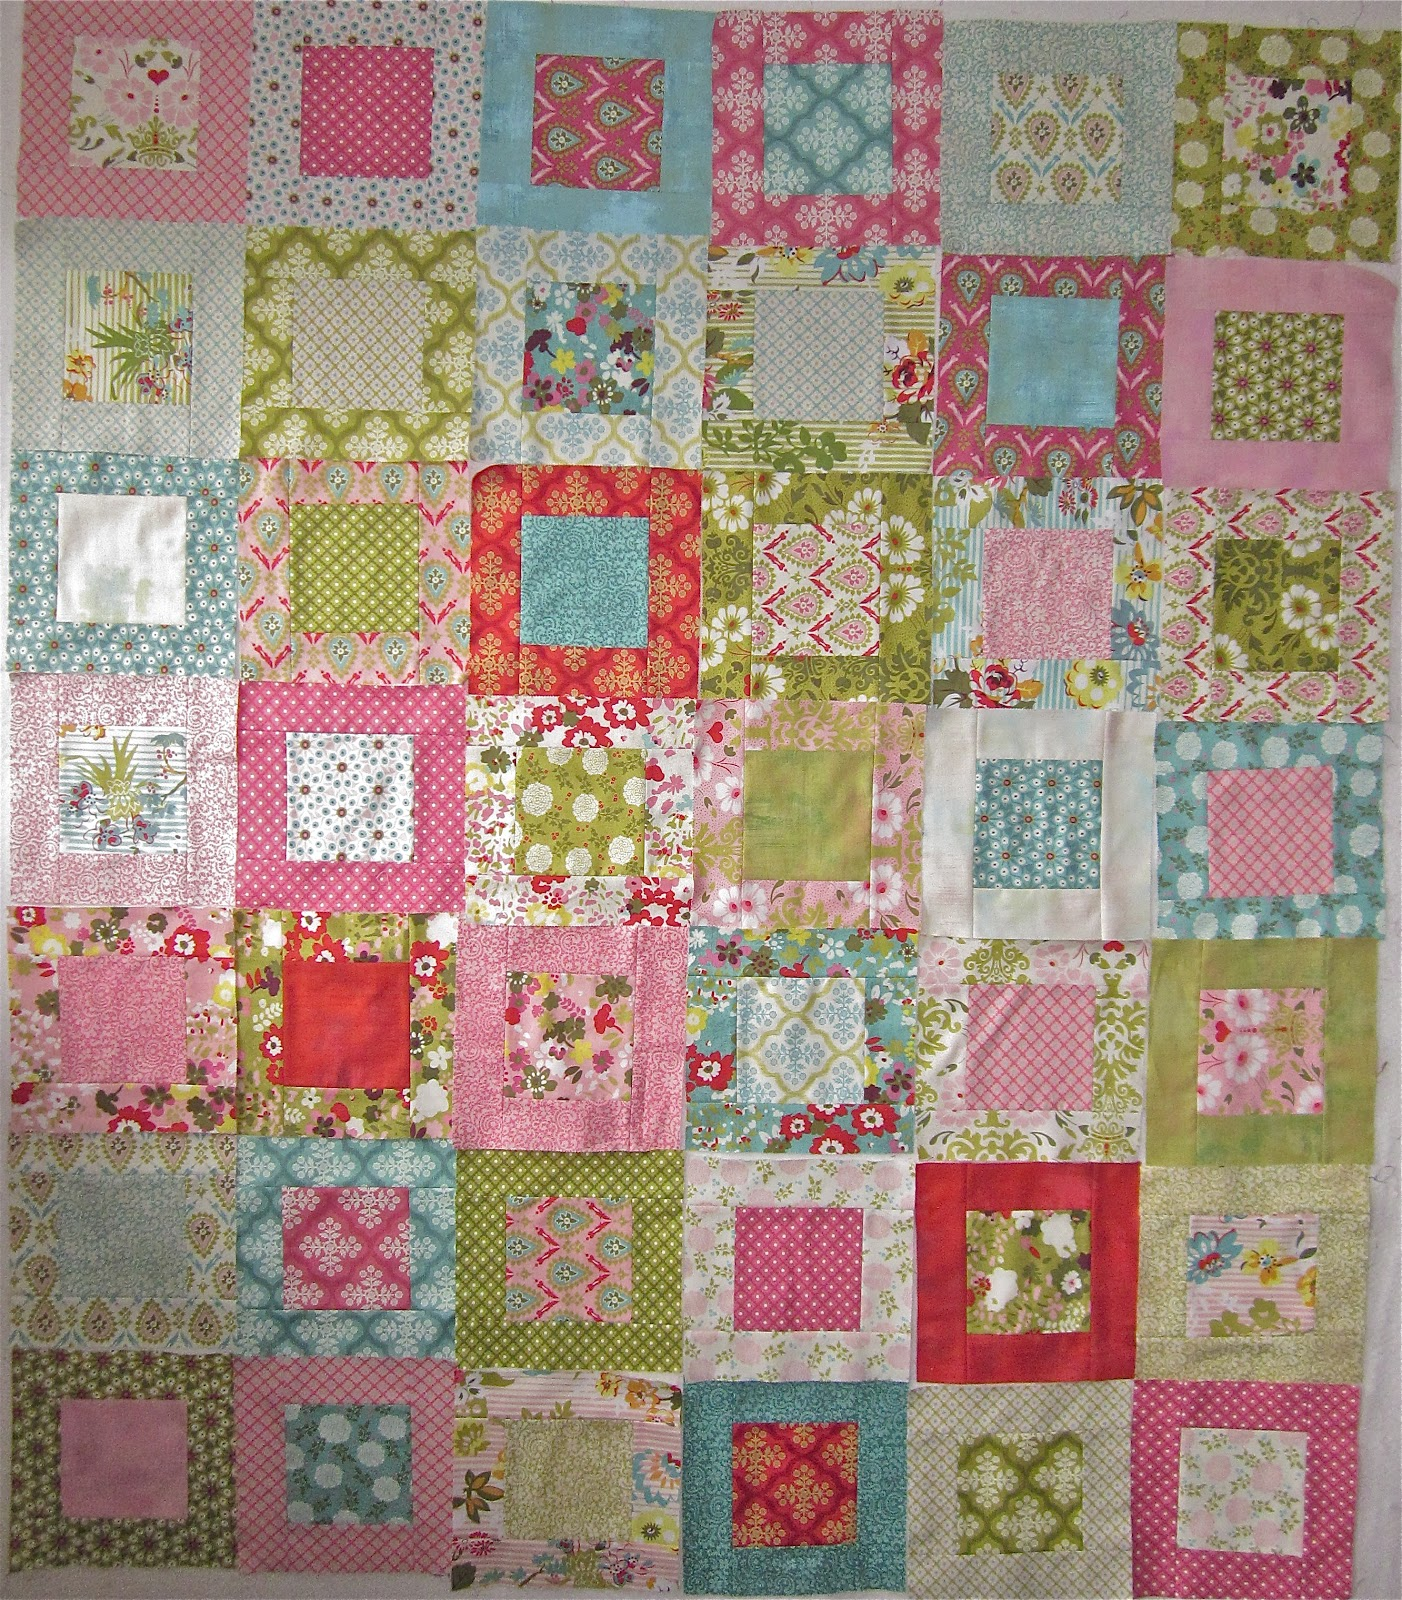 Layer Cake Quilt Patterns Easy : Ann Ferguson Quilts: Hello Luscious Layer Cake Quilt Tutorial